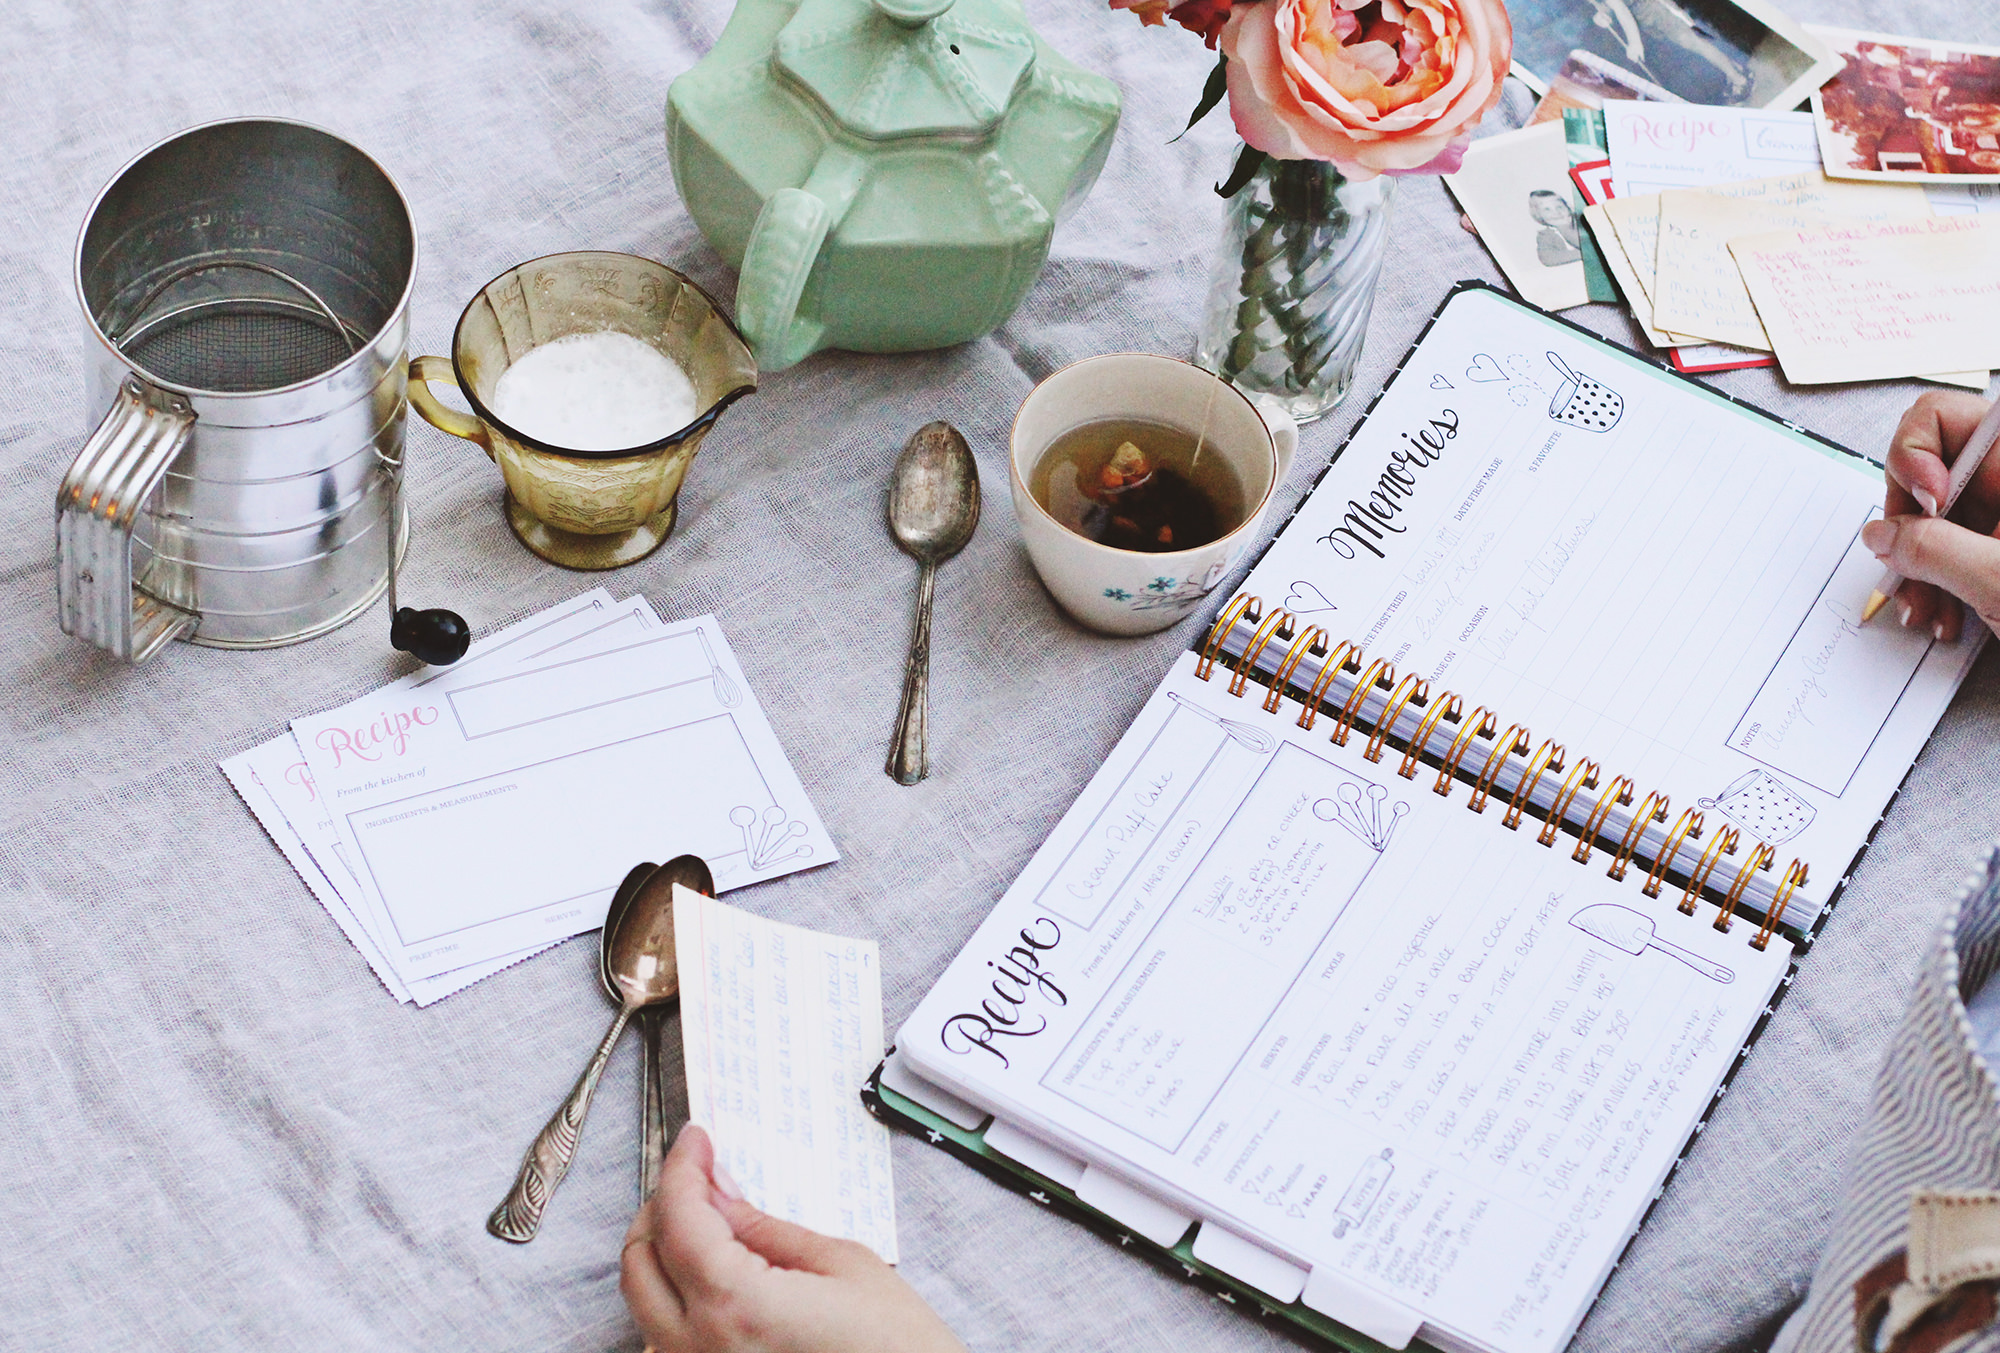 The Keepsake Kitchen Diary is a DIY recipe and Memory Keeper by Lily & Val.